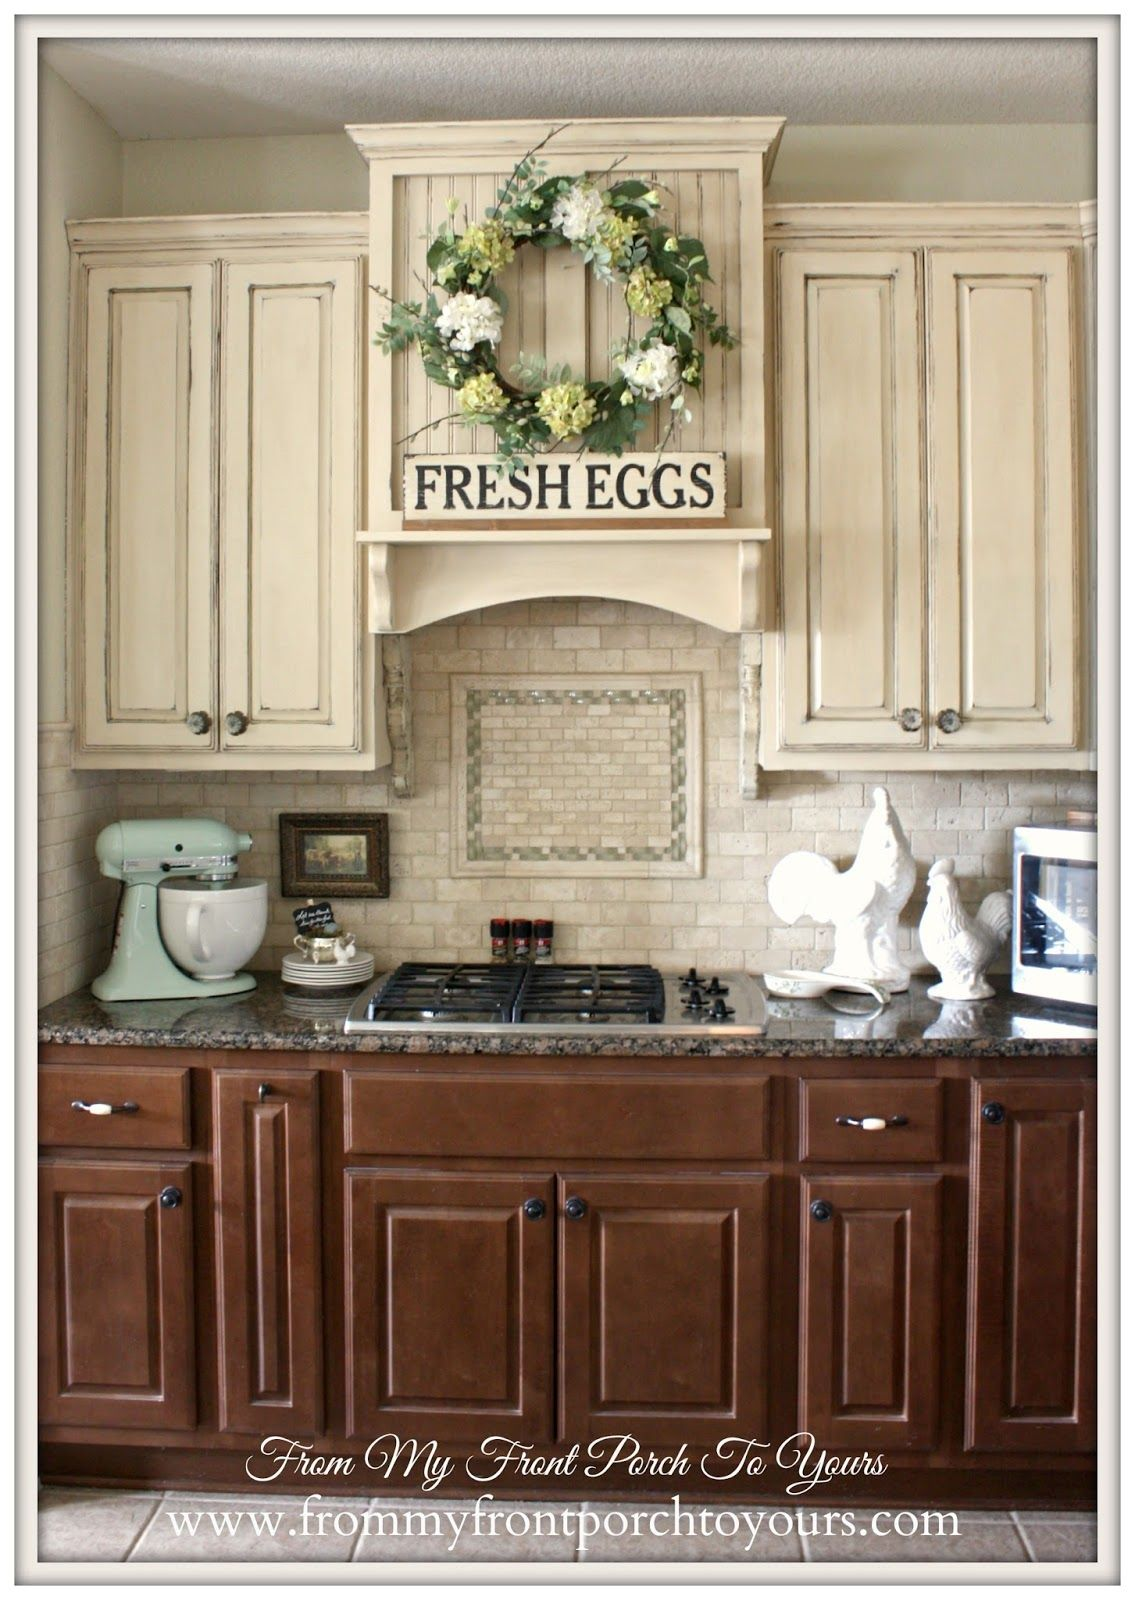 French Farmhouse Kitchen Sources Farmhouse kitchen decor